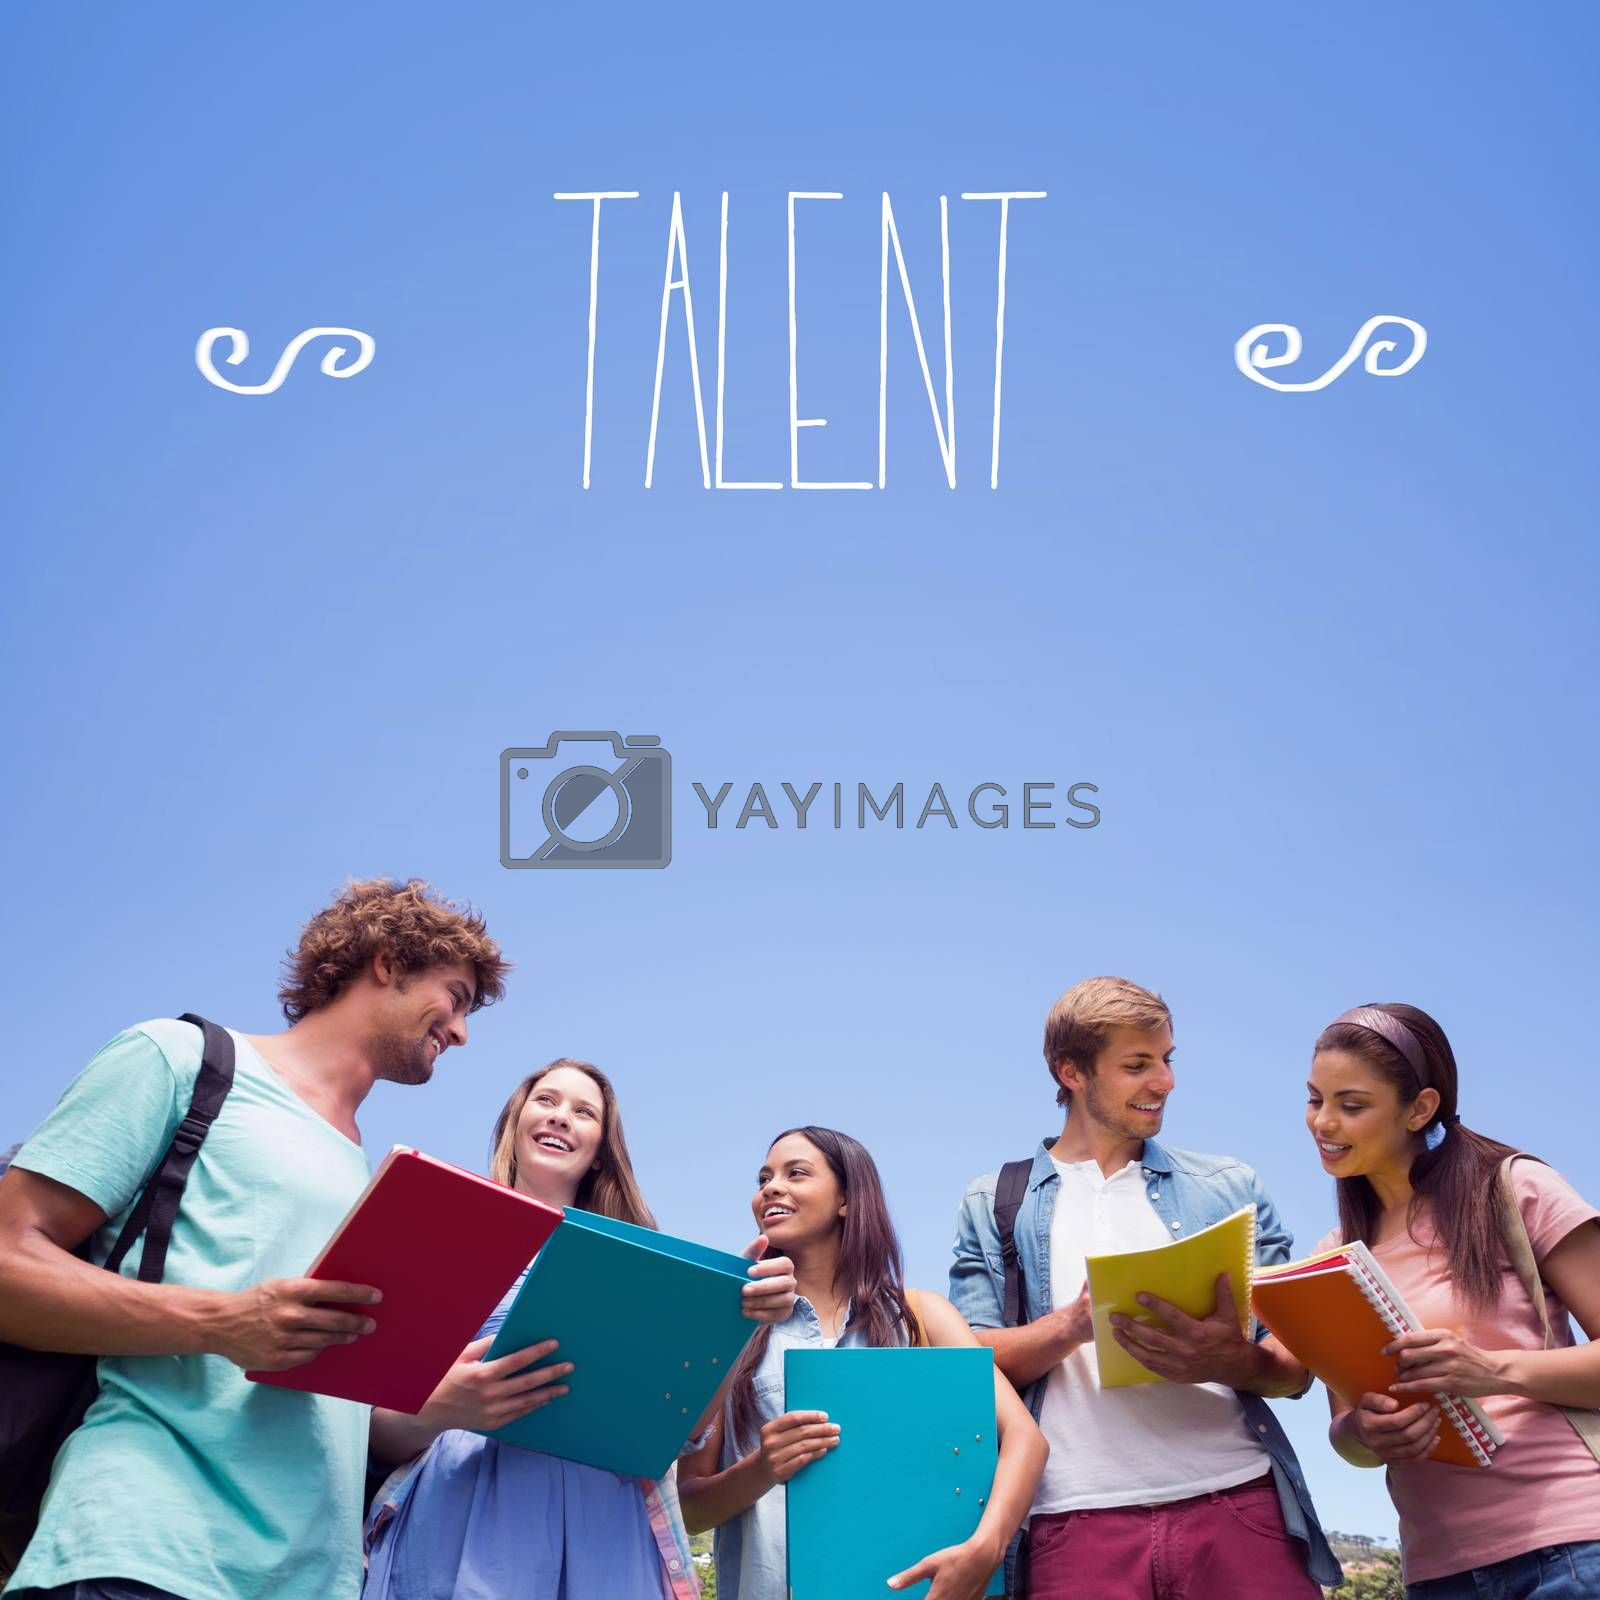 Talent against students standing and chatting together  by Wavebreakmedia